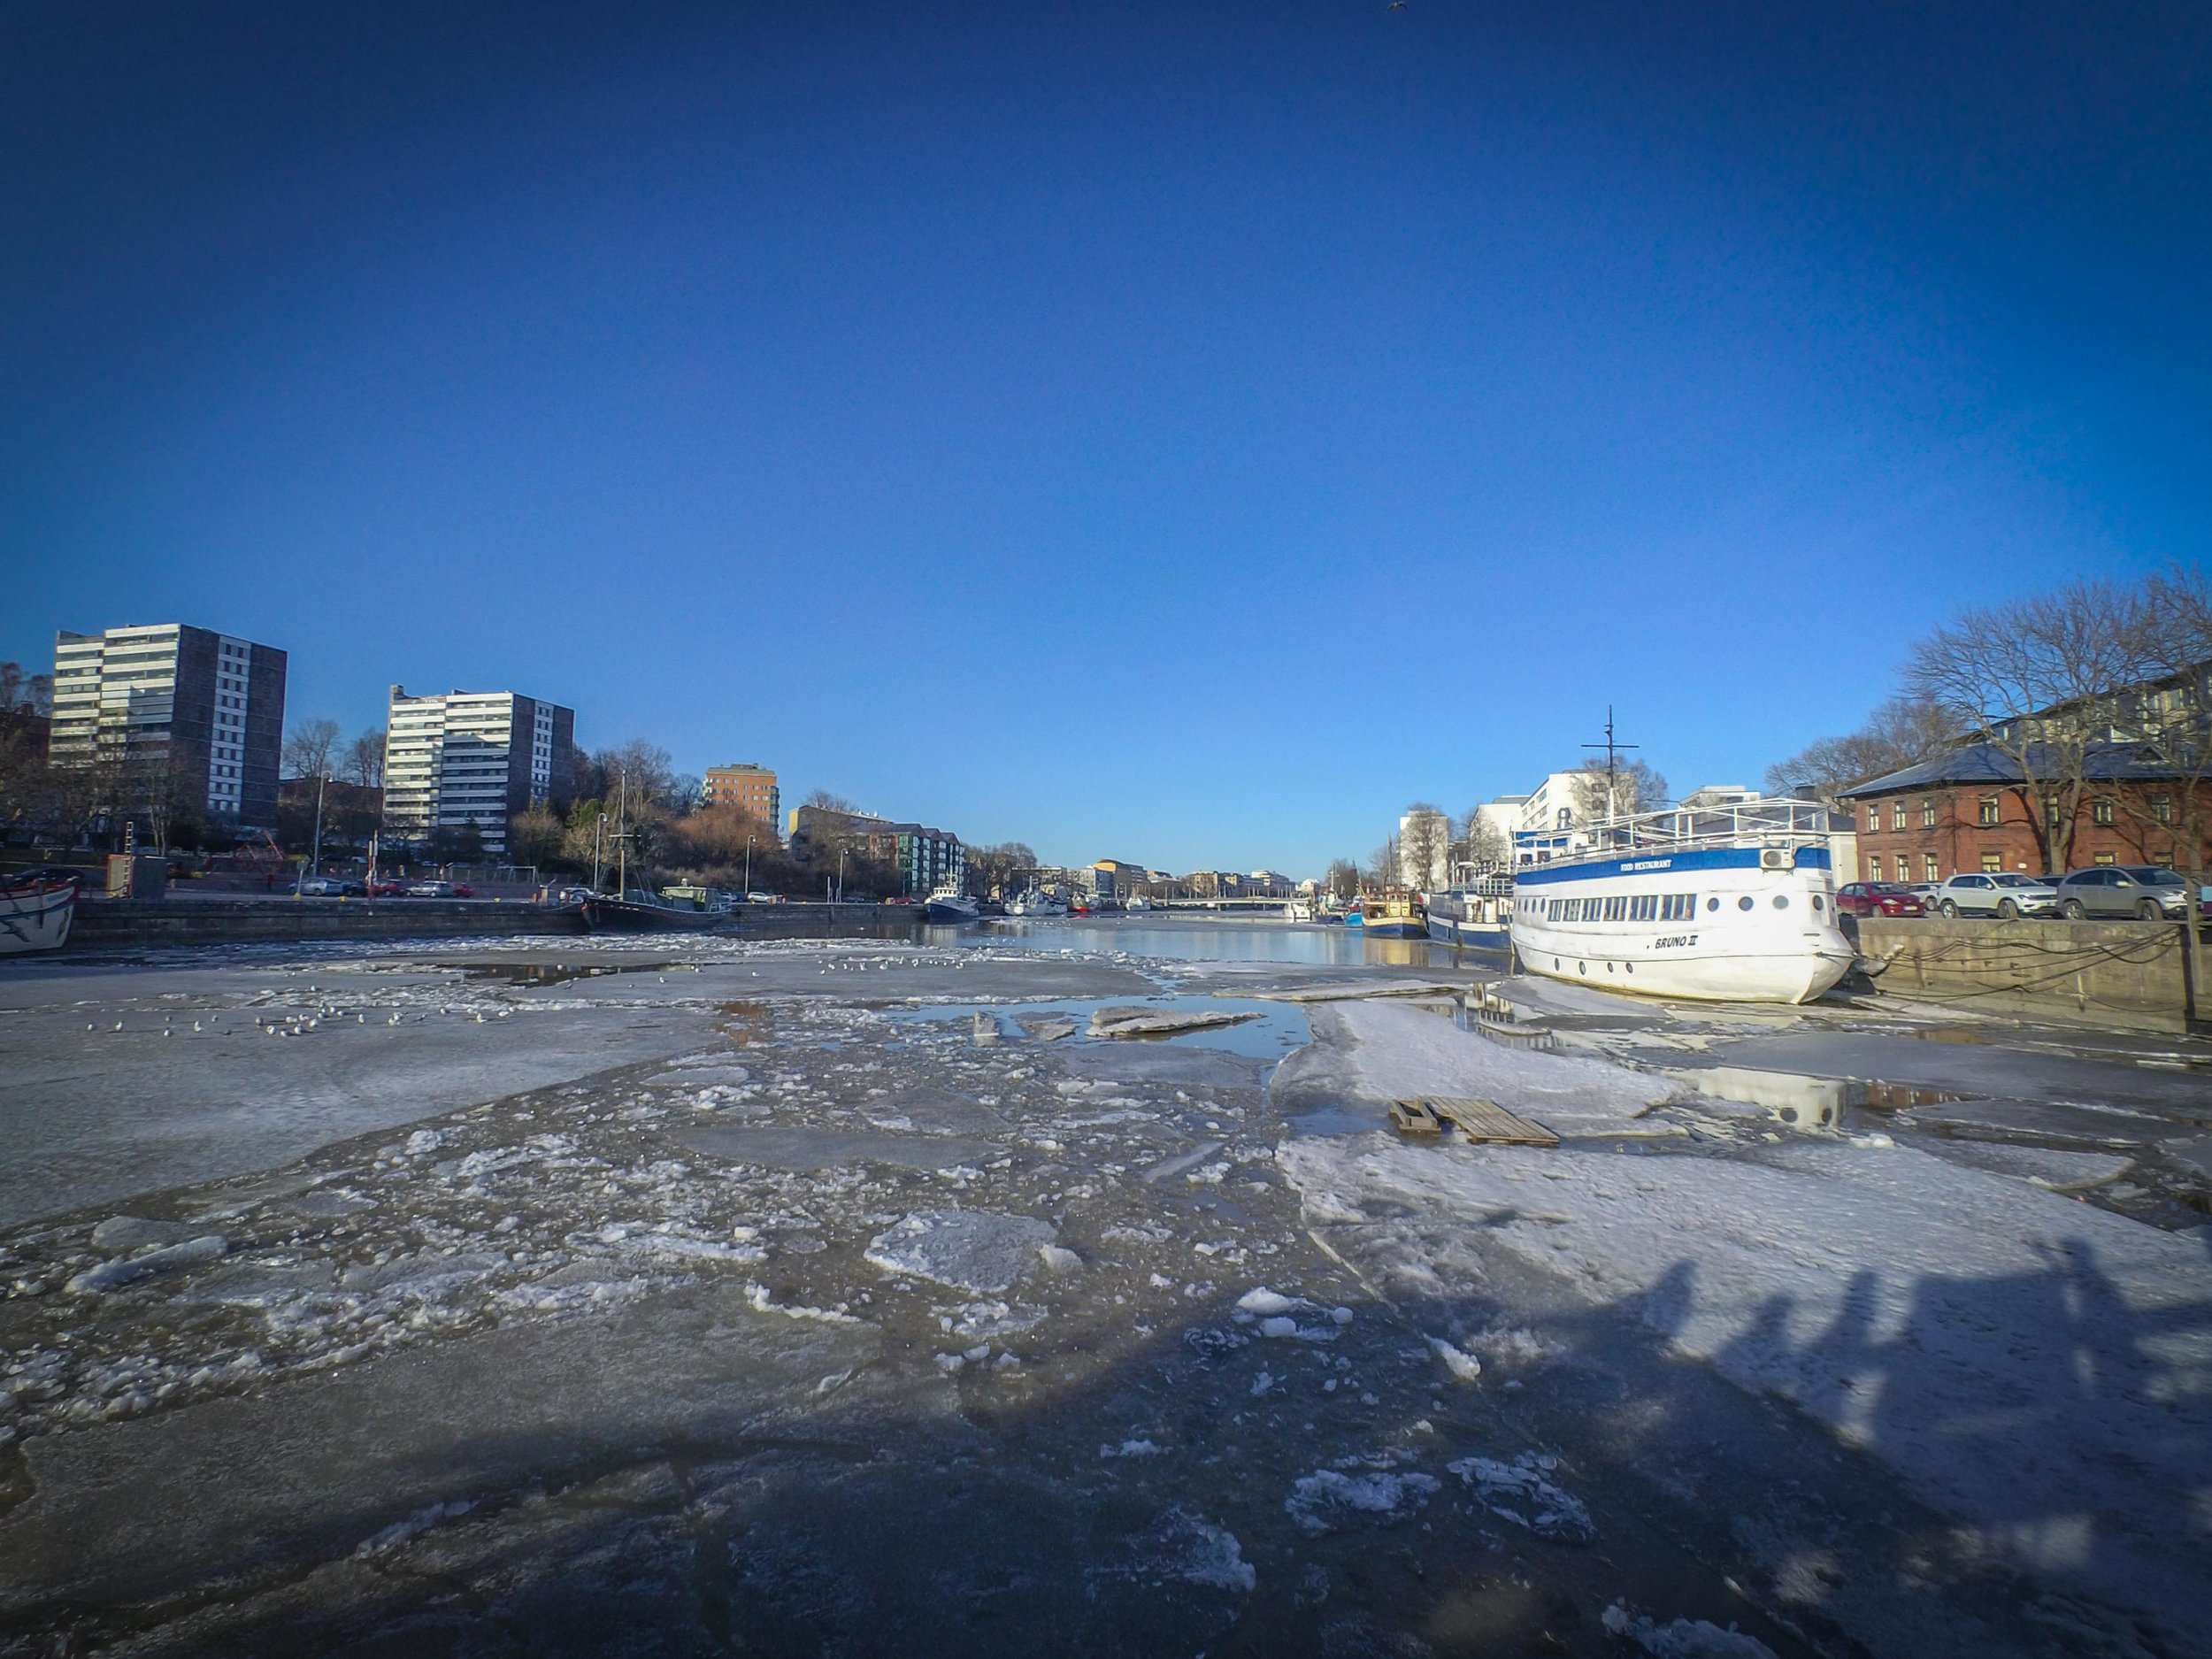 There was still plenty of ice in the Aura river